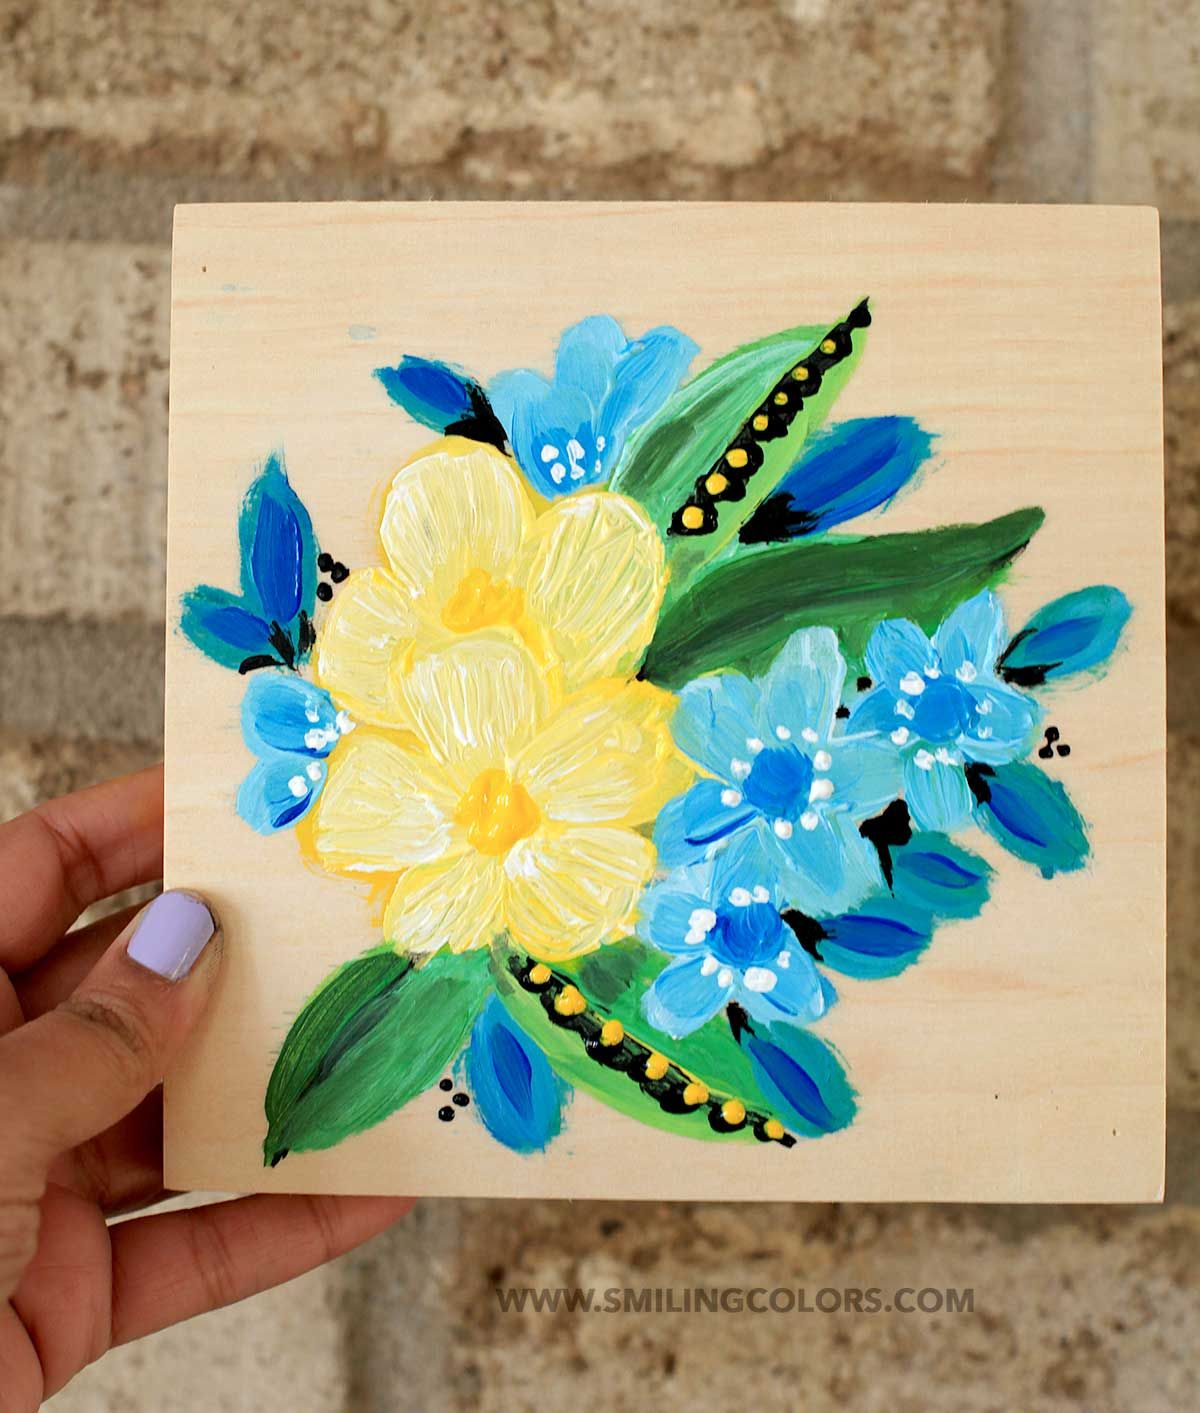 Painting Acrylic Flowers On A Wood Canvas Smitha Katti Acrylic Painting Flowers Easy Flower Painting Flower Painting Canvas